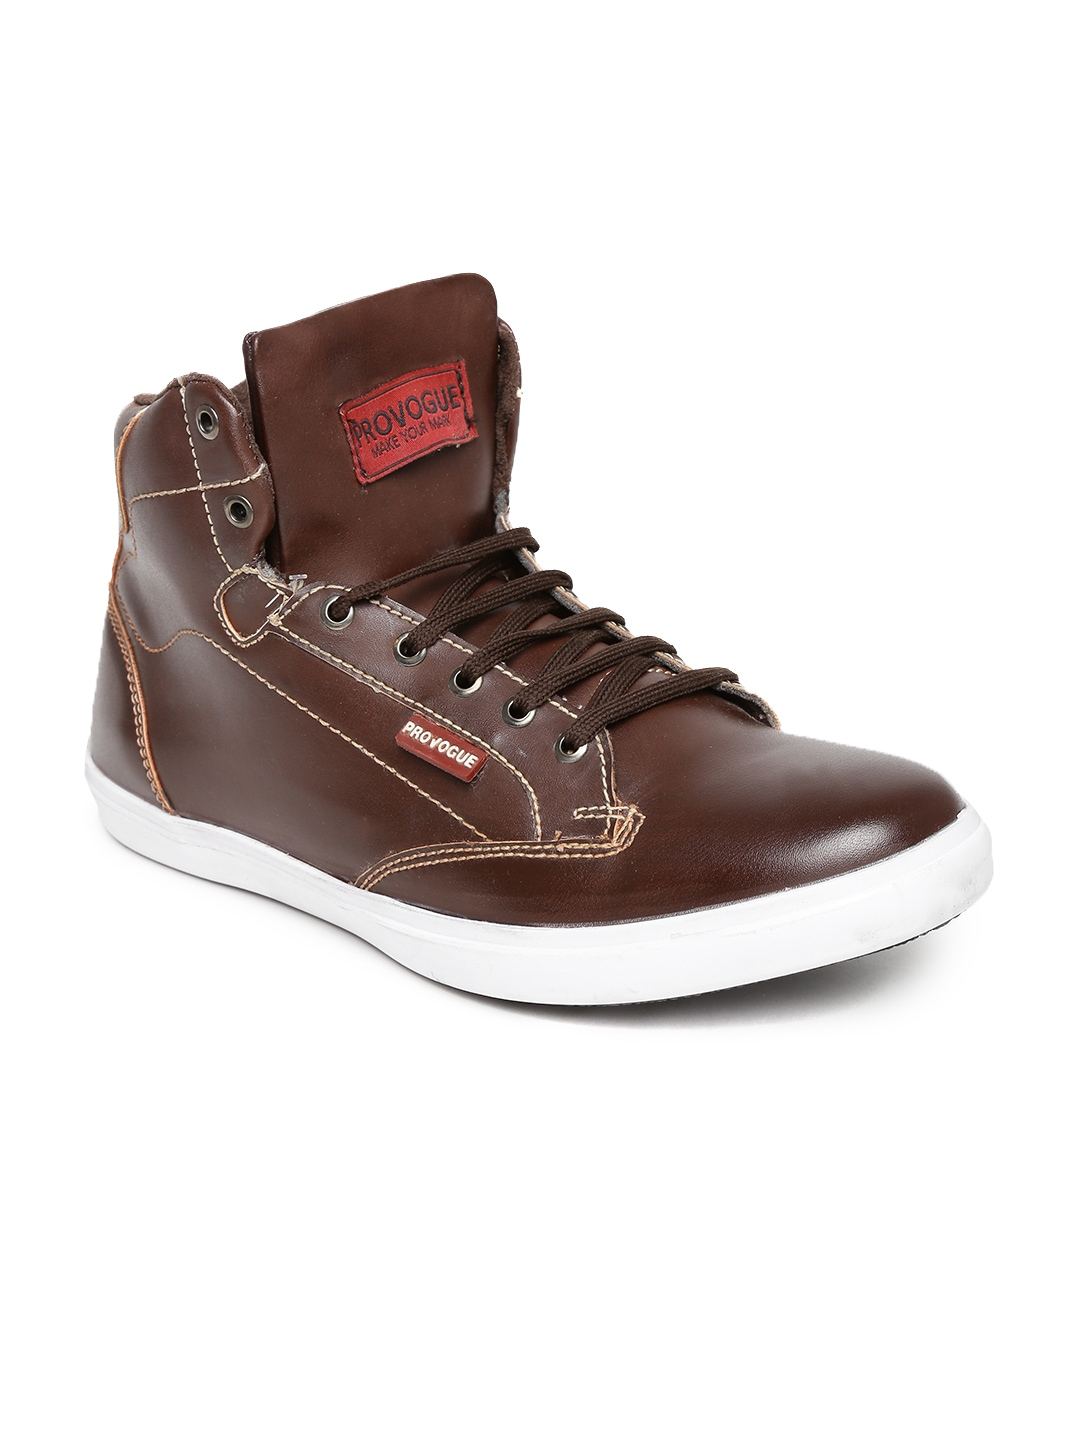 myntra provogue brown leather casual shoes 814743